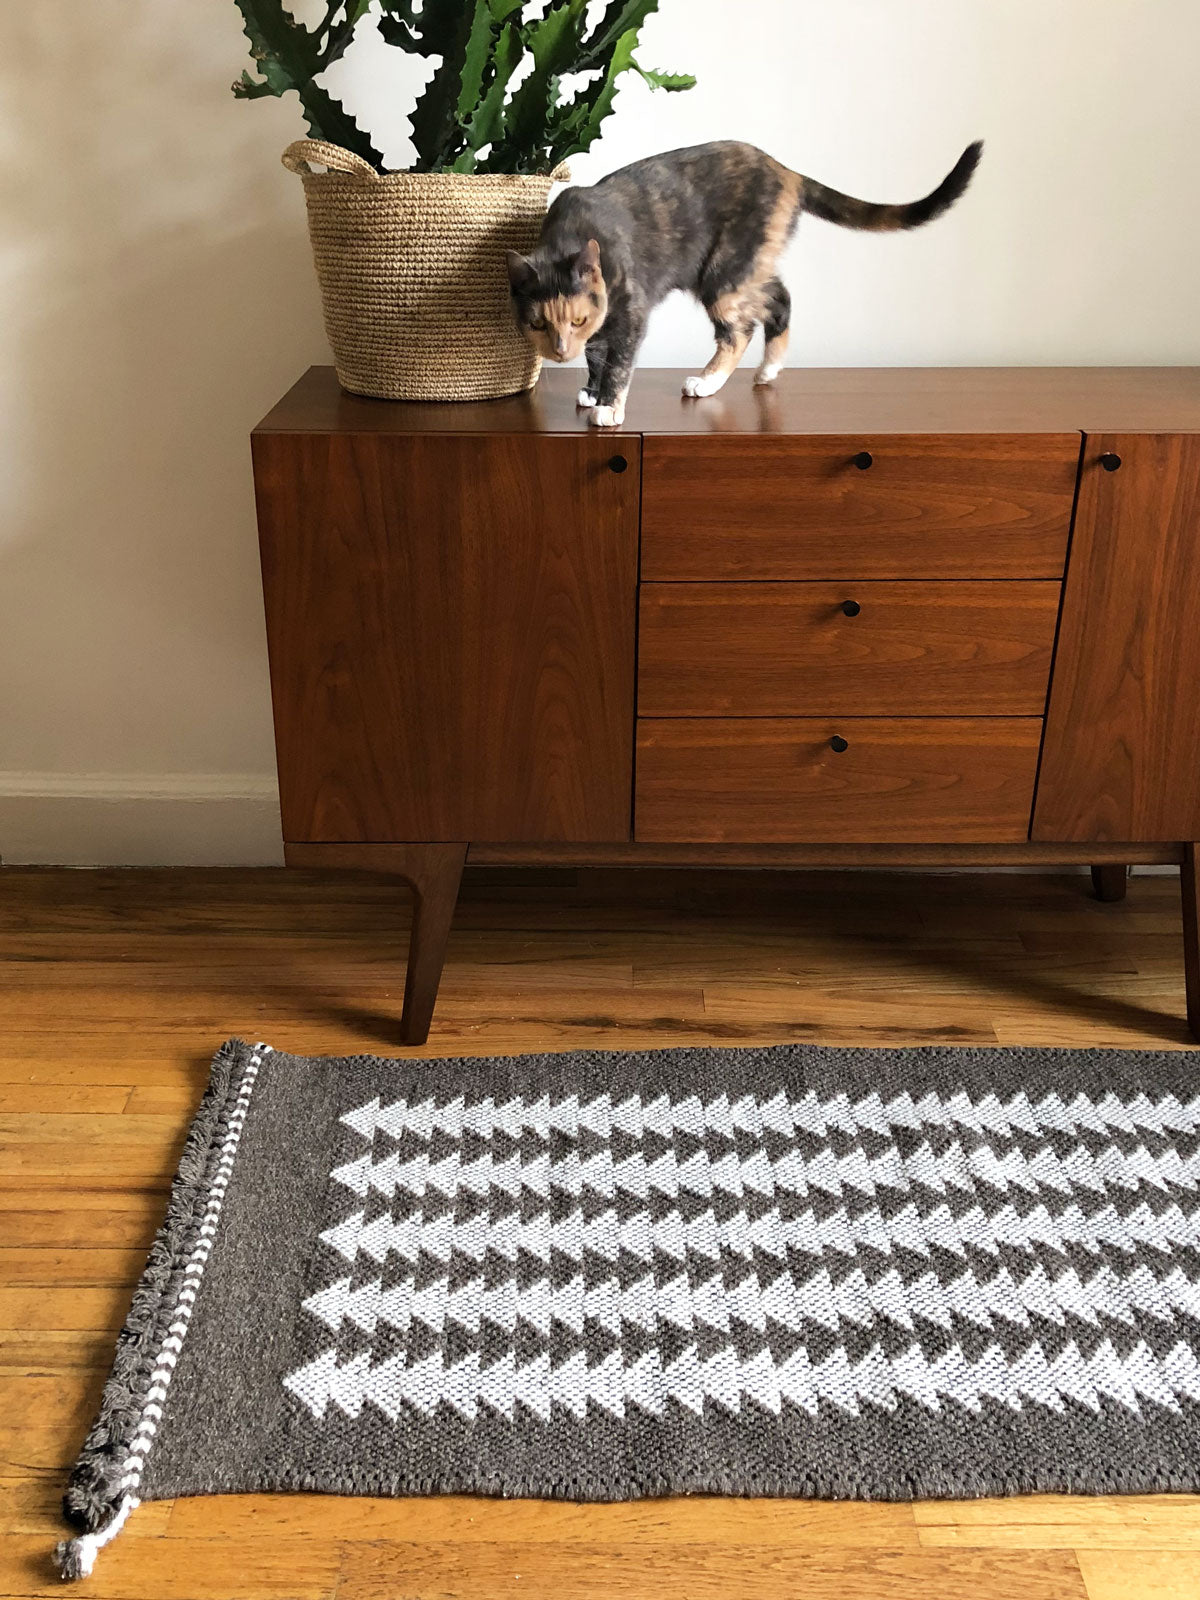 SUNDAY/MONDAY handwoven runner rug in slate and white. Handmade by 5th generation master weavers using undyed sheep wool. 2x5'